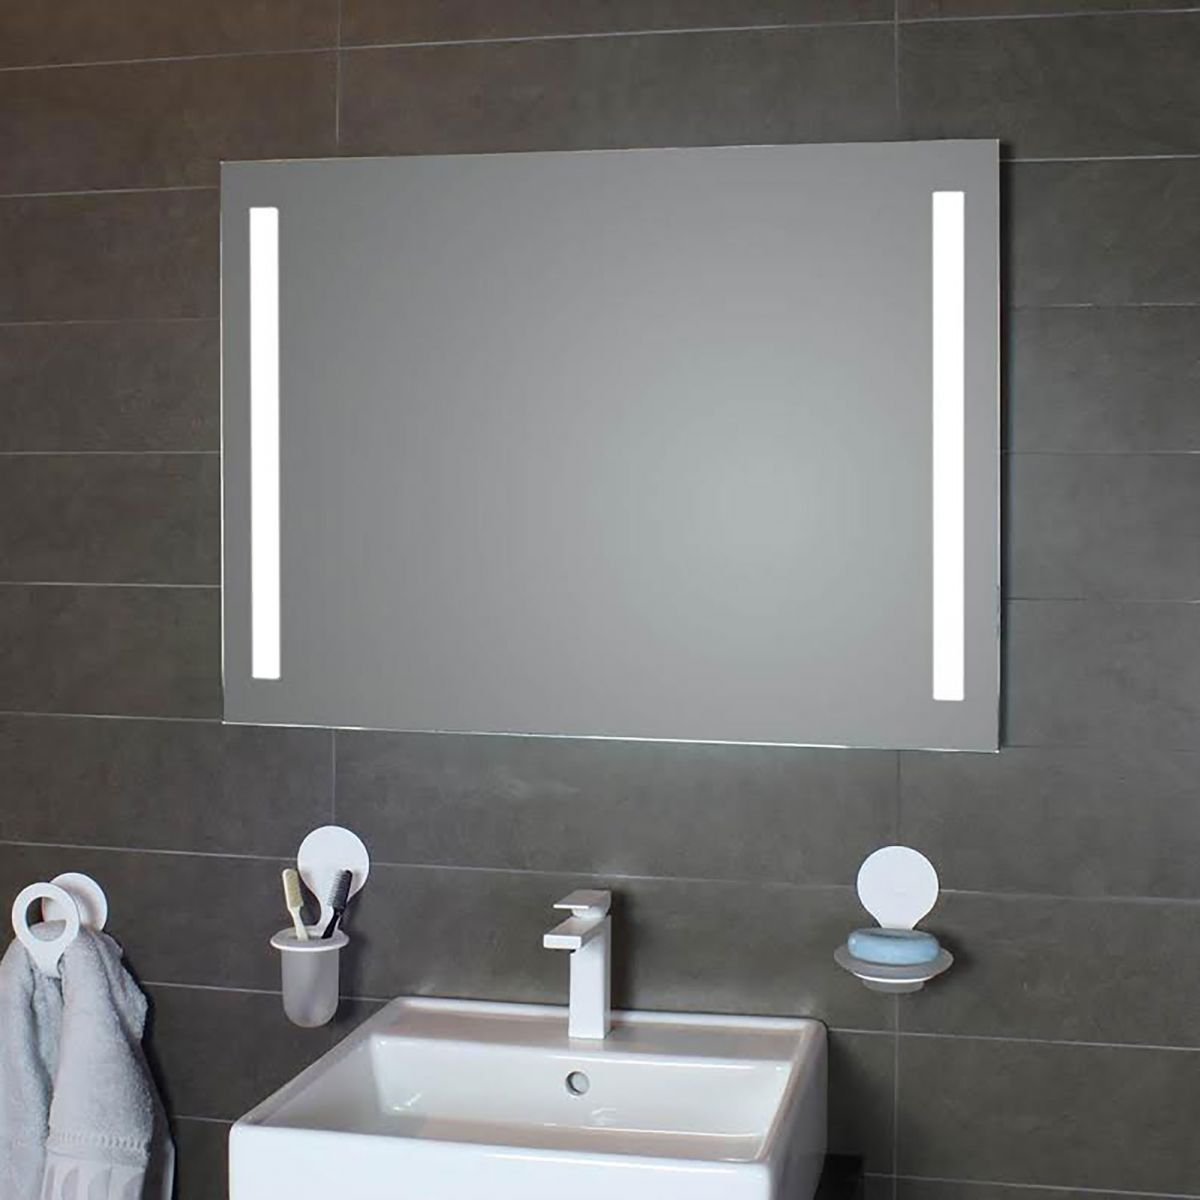 /wp/wp-content/uploads/2020/03/ws-bath-collections-simply-led-lighted-bathroom-wall-mirror.jpg